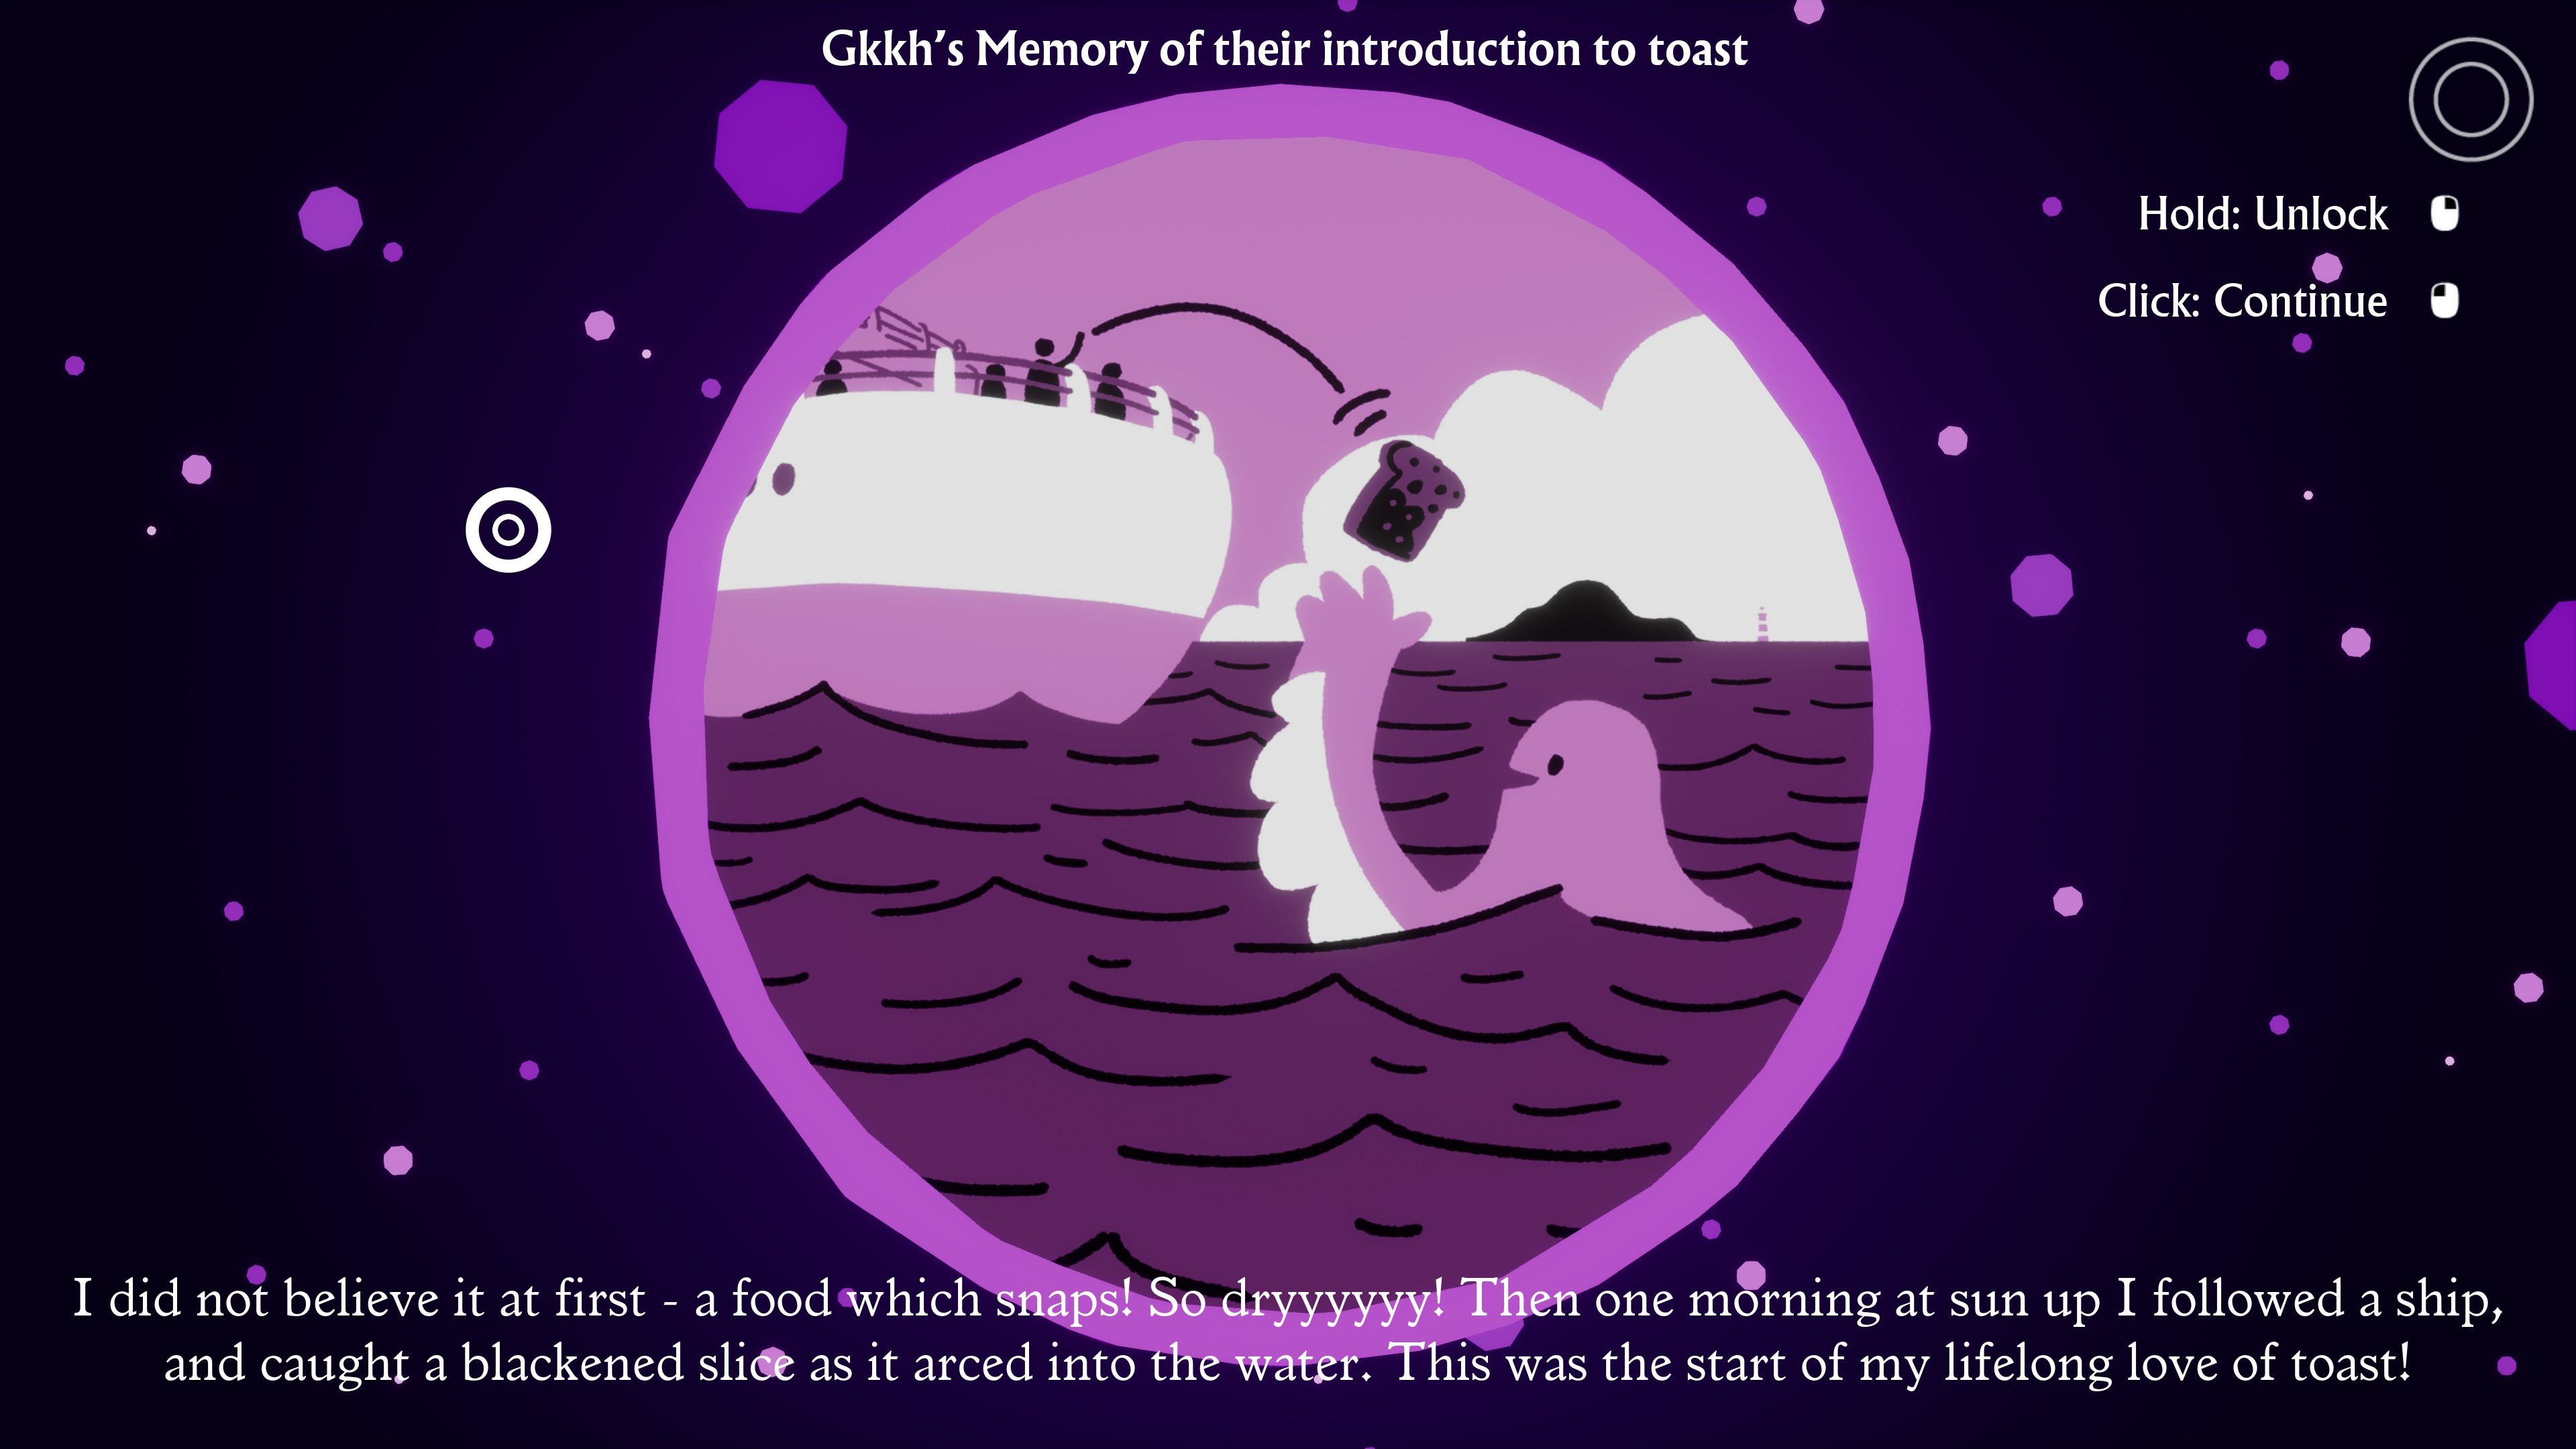 I Am Dead. Gkkh's Memory of their introduction to toast. I did not believe it at first - a food which snapps! So dryyyyyy! Then one morning at sun up I followed a ship, and caught a blackened slice as it arced into the water. This was the start of my lifelong love of toast!